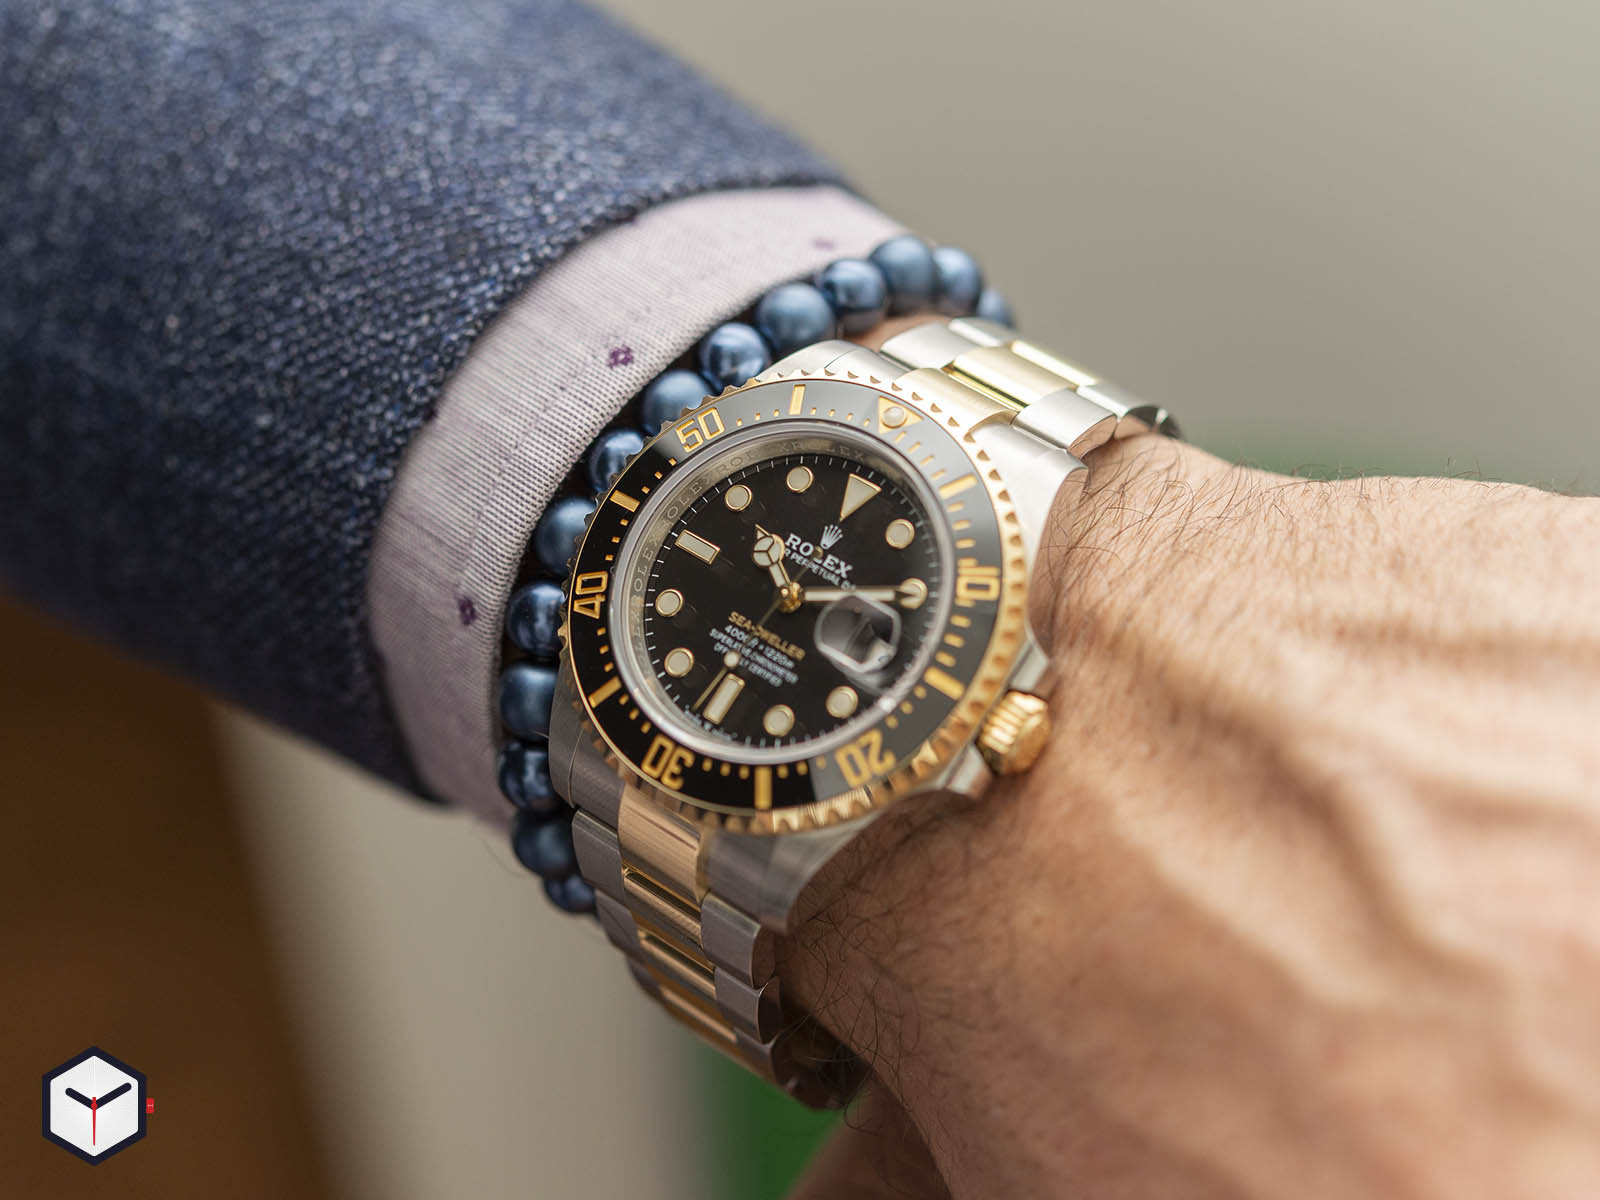 126603-rolex-sea-dweller-two-tone-baselworld-2019-8.jpg